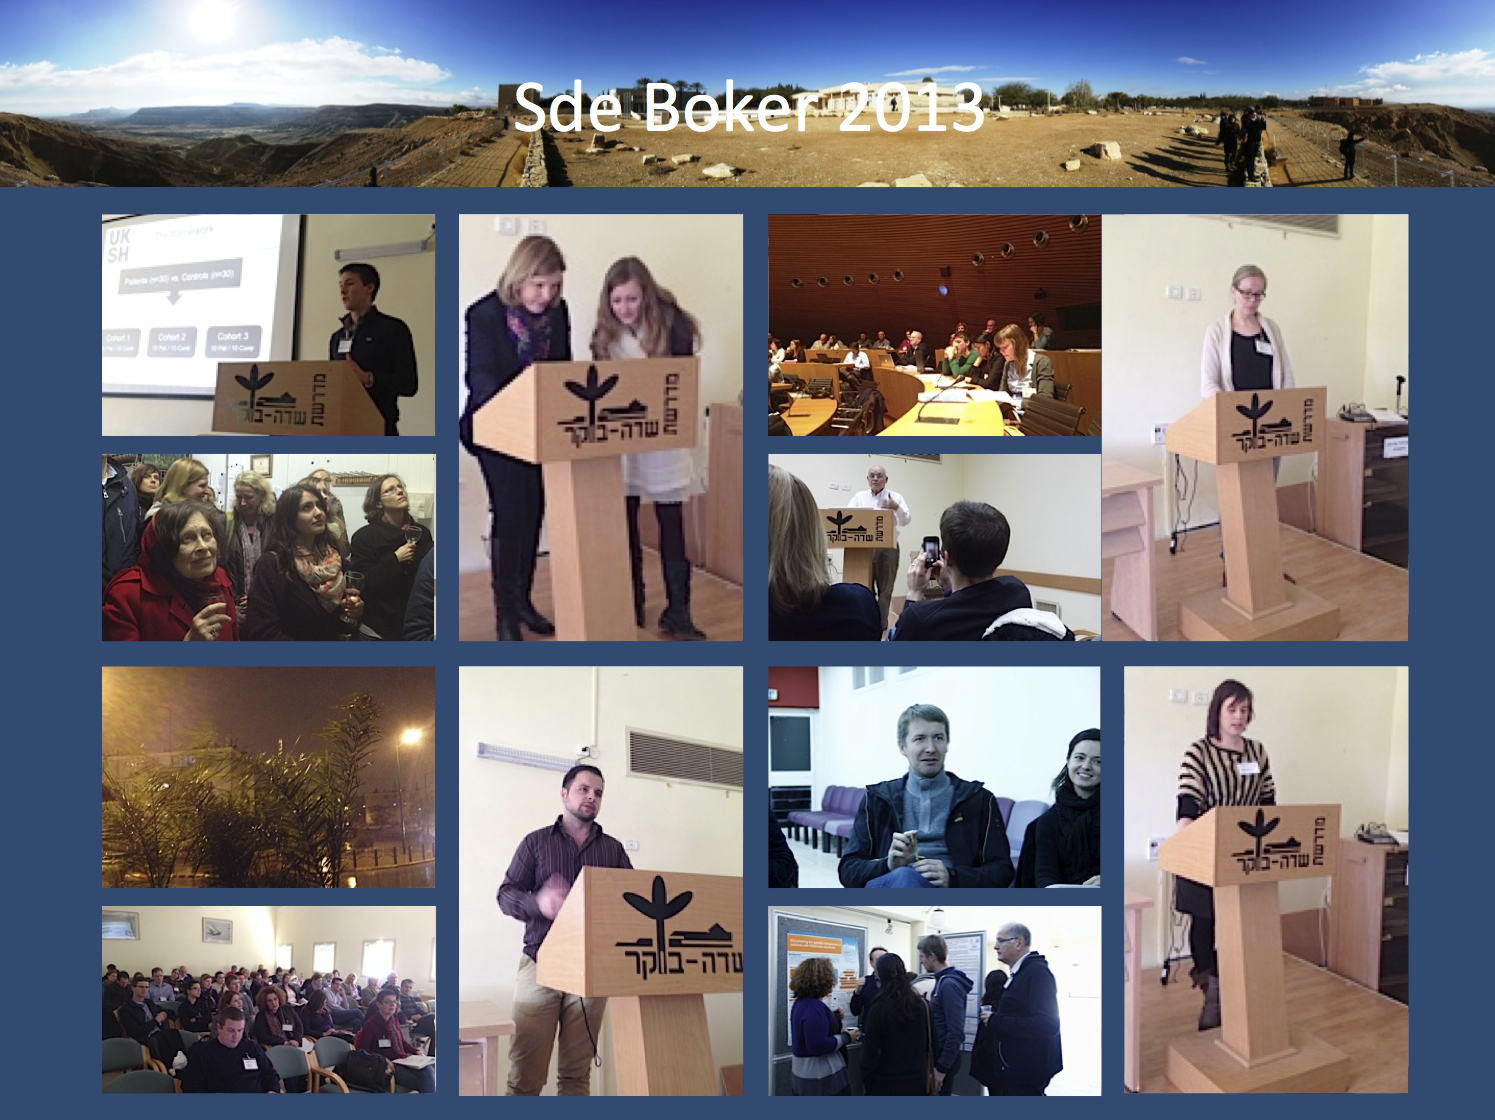 Some impression from the 2013 Sde Boker workshop.